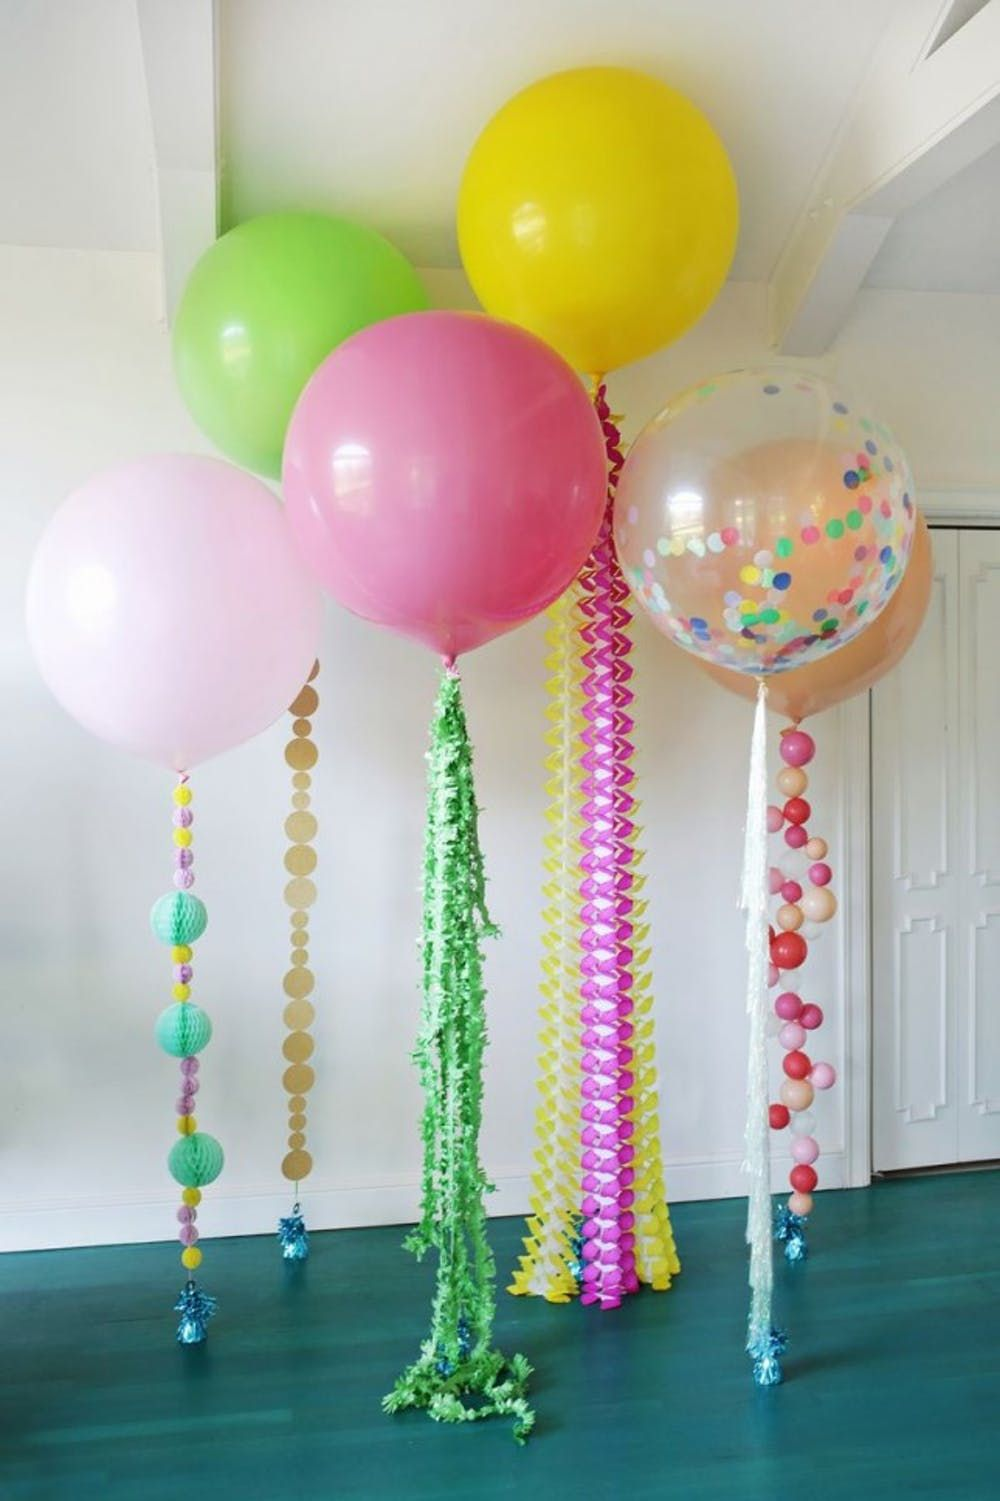 4ft Decorative Helium Balloon Tail Childrens Baby Birthday Party Decoration TAIL